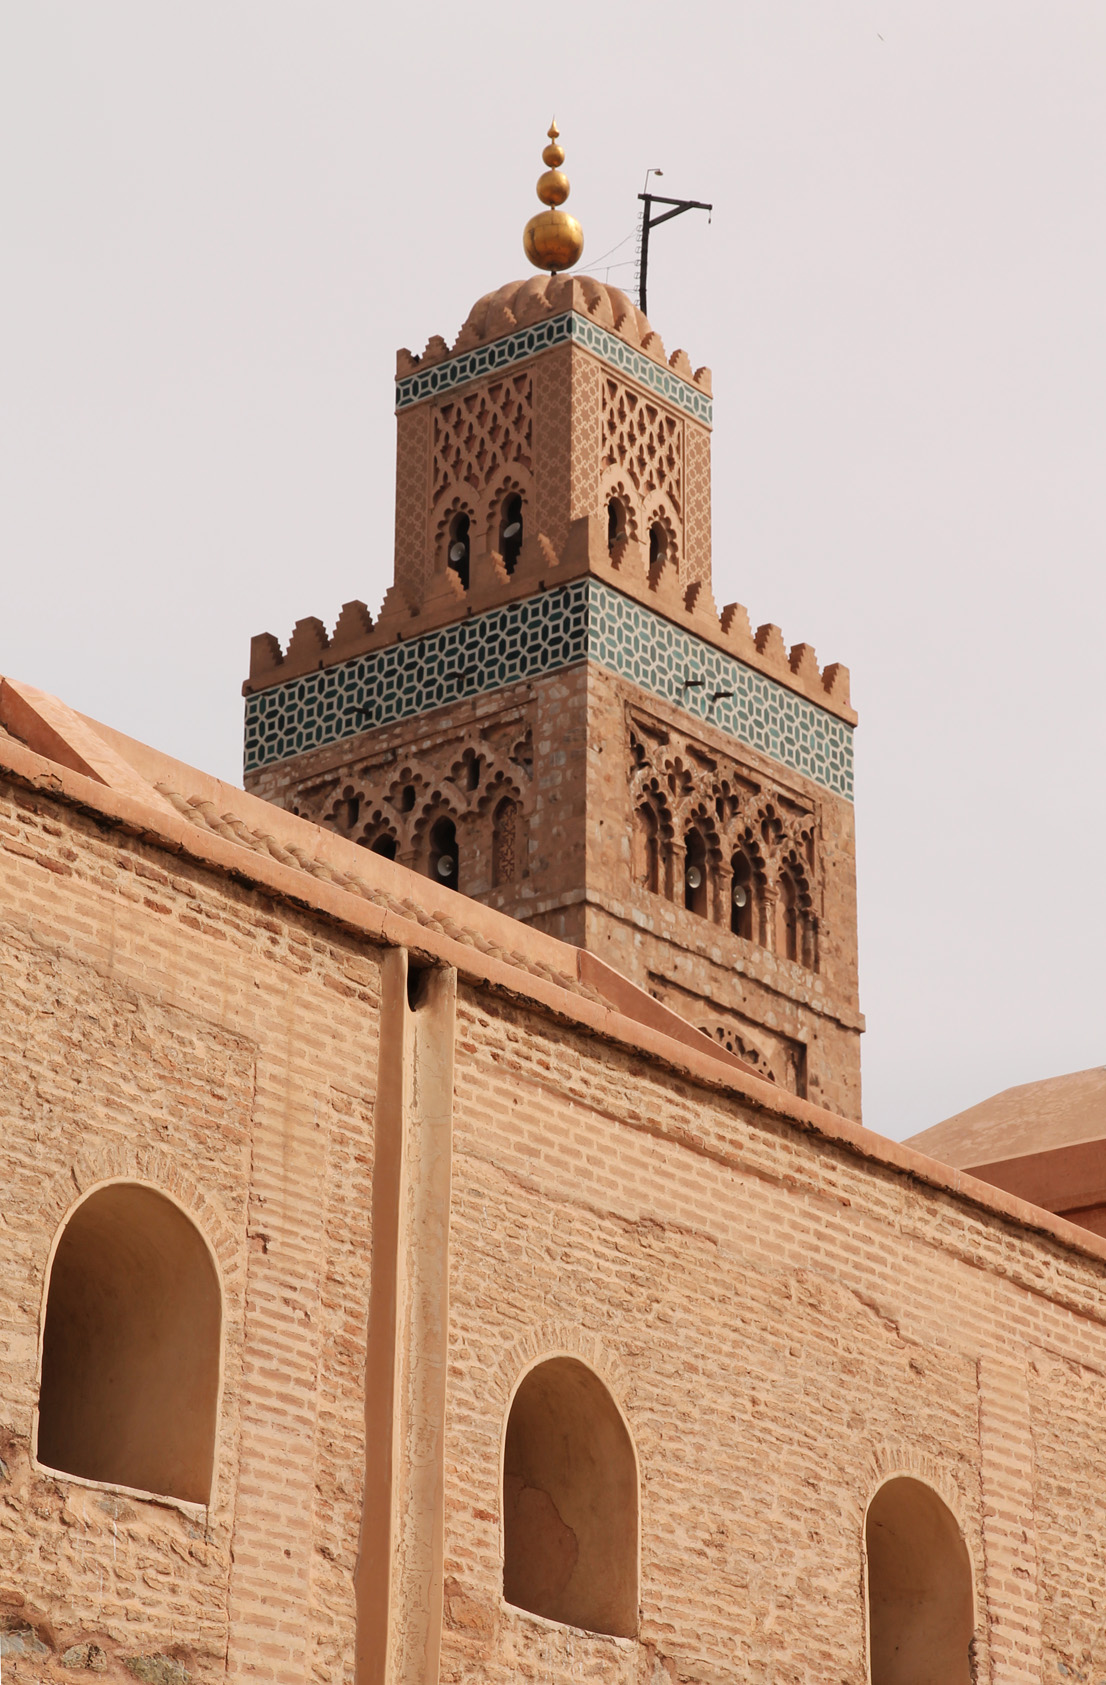 The Koutoubia Mosque.